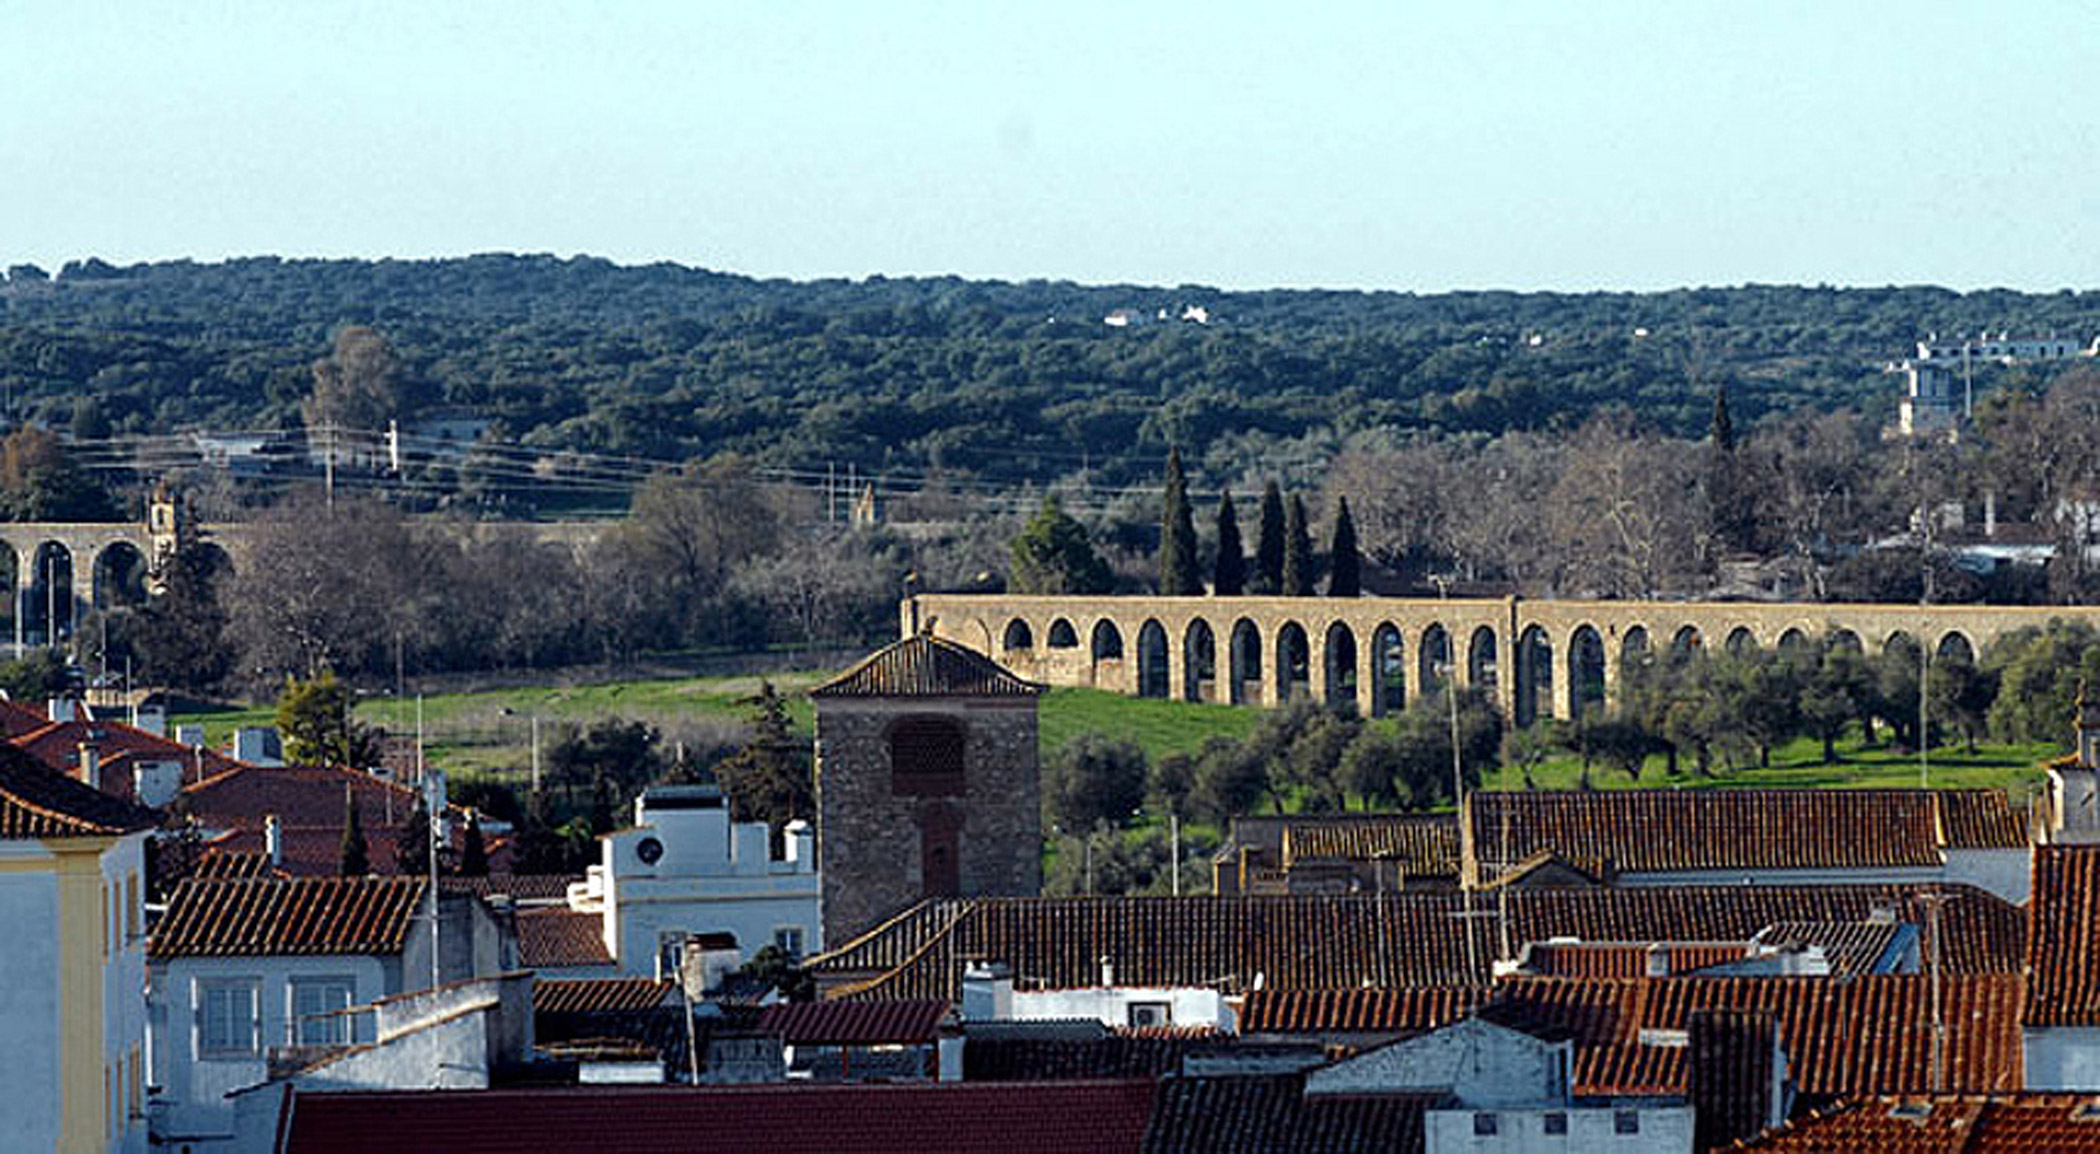 Portugal, Água da                               Prata Aqueduct: Laborious effort is needed to preserve the Água da Prata Aqueduct while allowing it to keep functioning for the irrigation of parks and gardens.